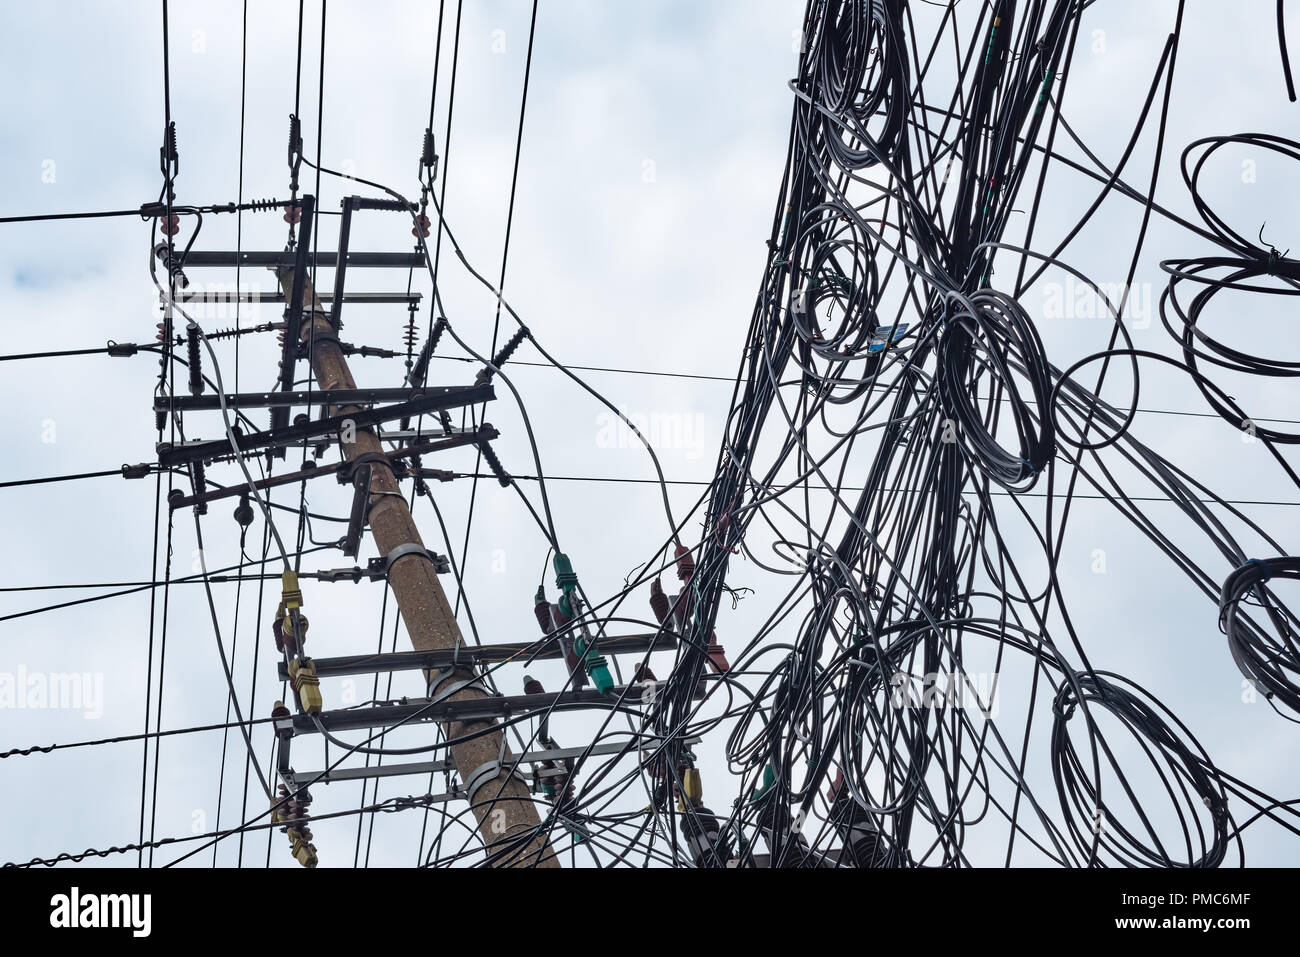 Telephone pole and chaotic mess of wires against sky in China - Stock Image